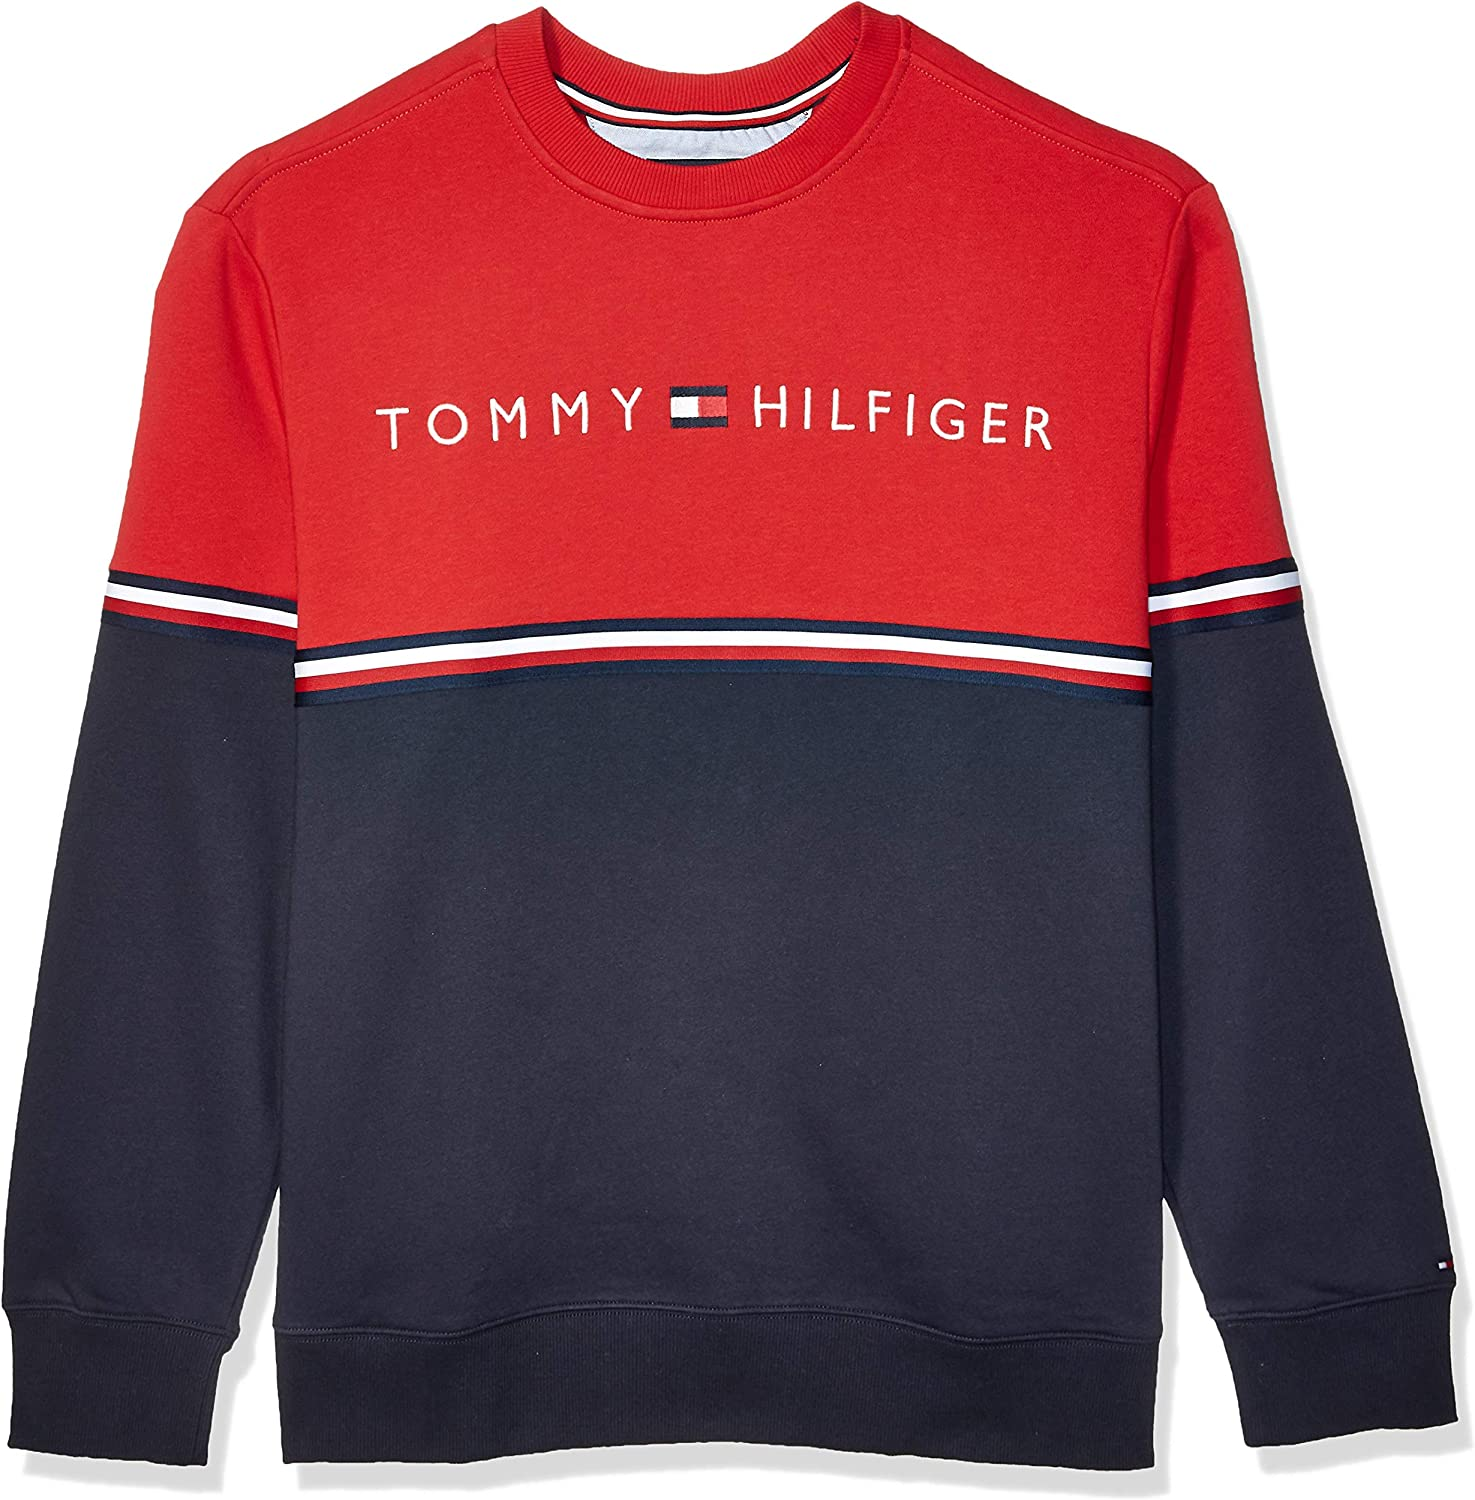 tommy hilfiger big and tall size chart